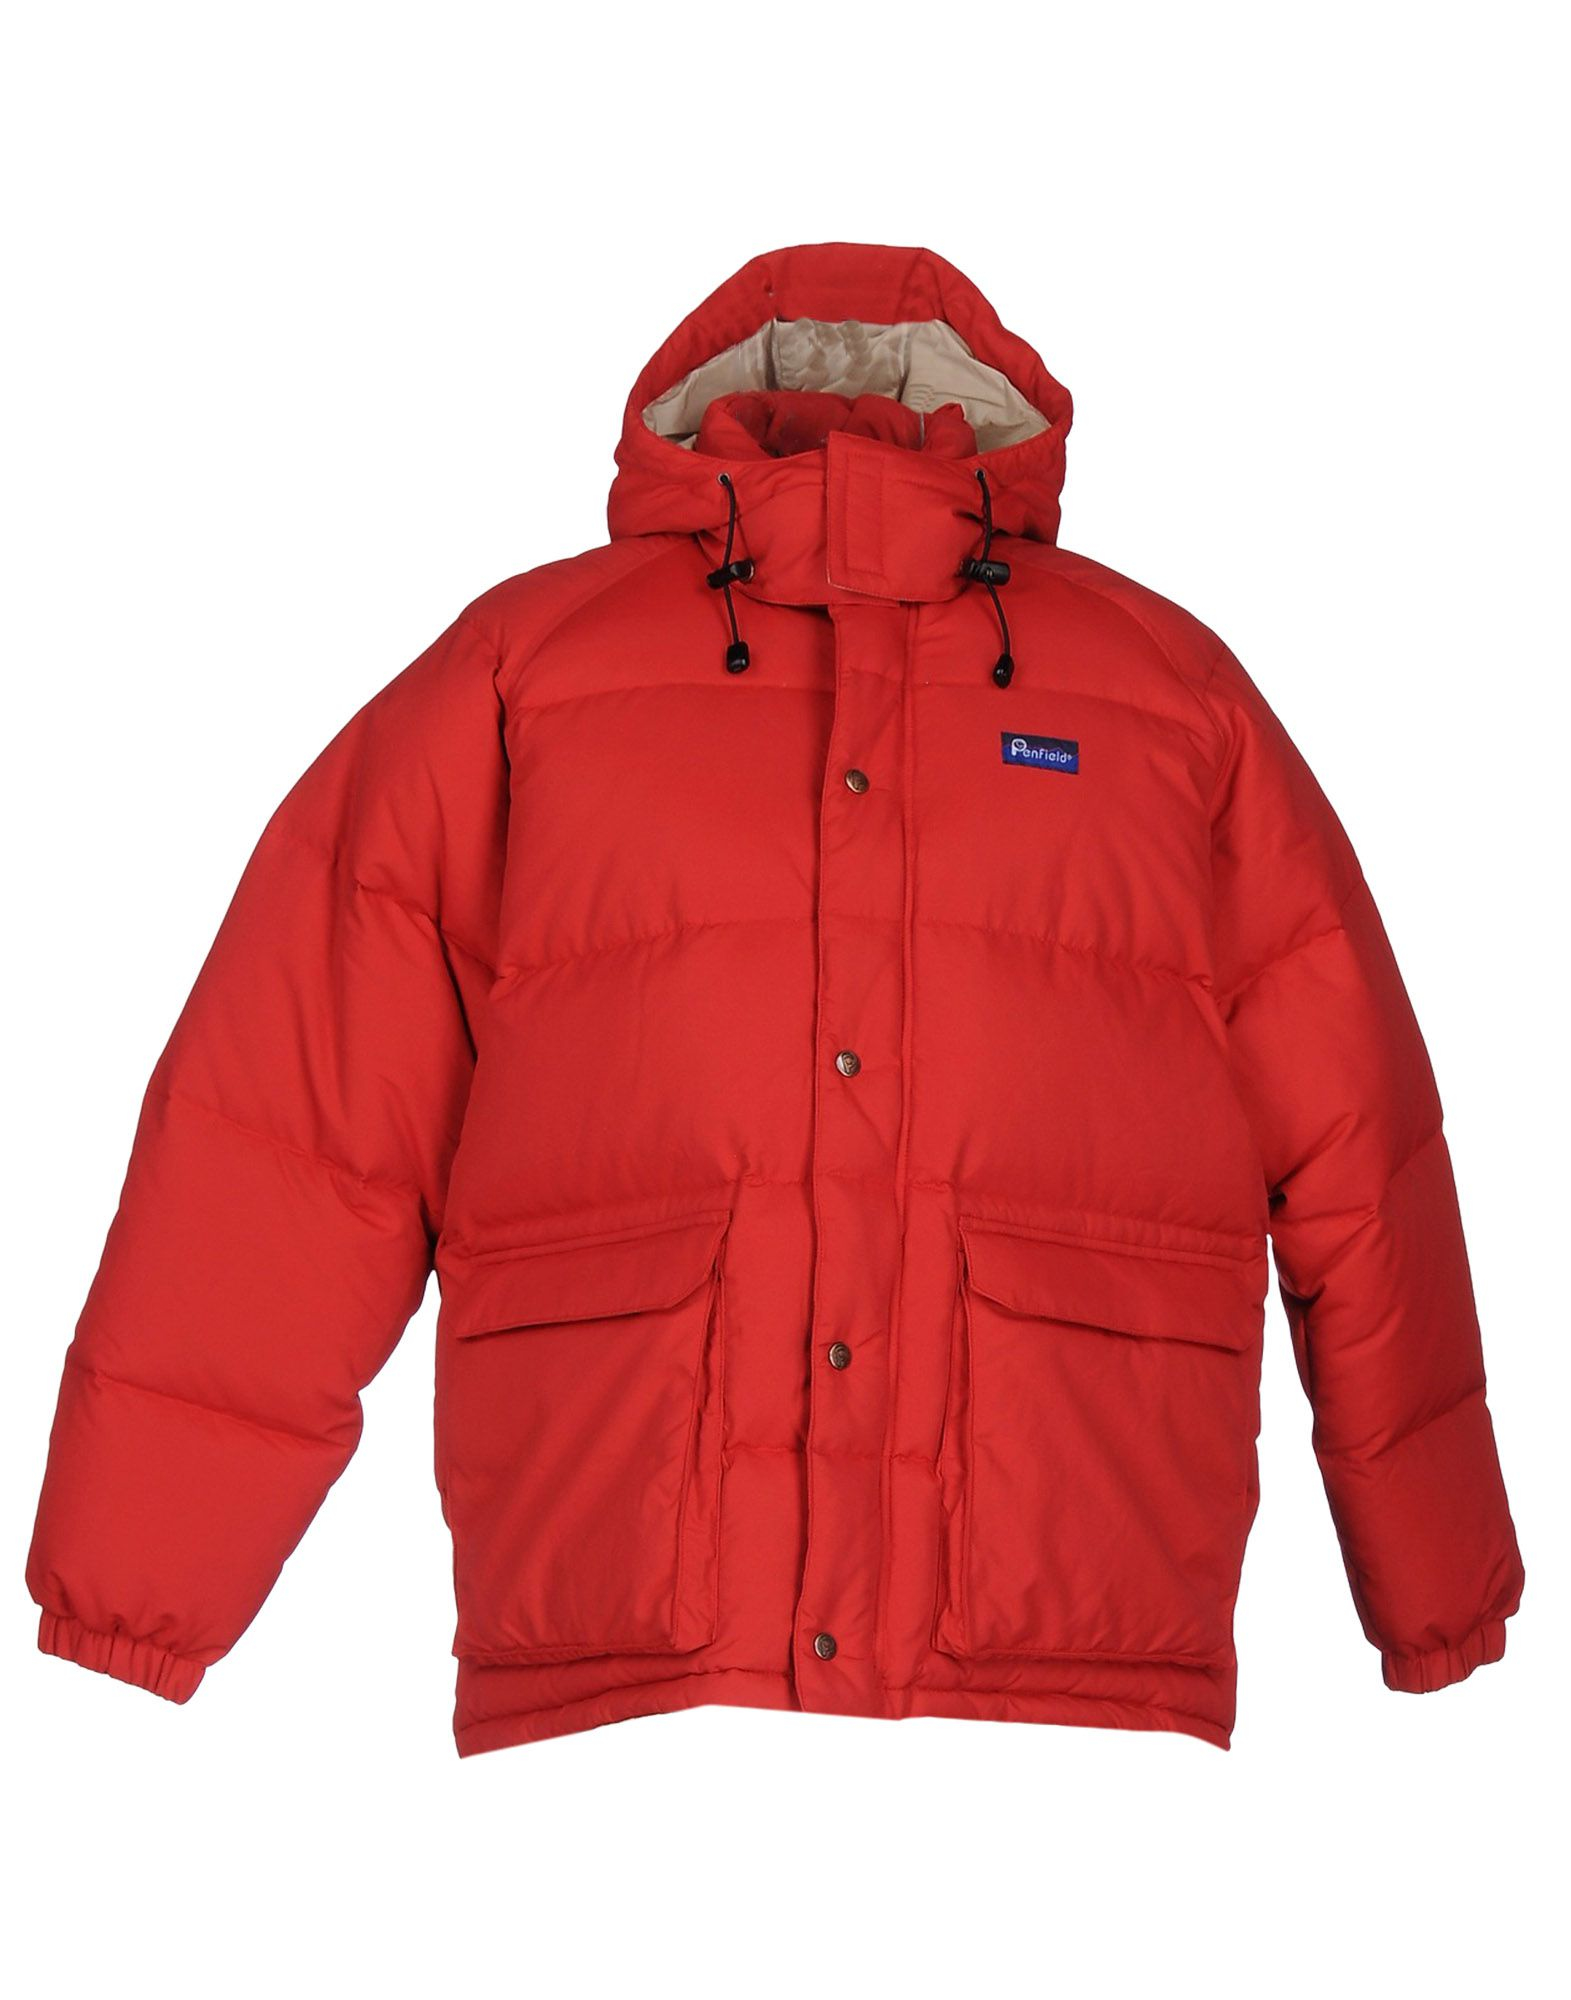 penfield black single women Results 1 - 48 of 91  madewell x penfield kasson jacket in true black sz xs  nwt women's penfield  kelsey down duffle jacket, red, size s  2 front side slit pockets as well as a  single large interior pocket, and single large back side slit.